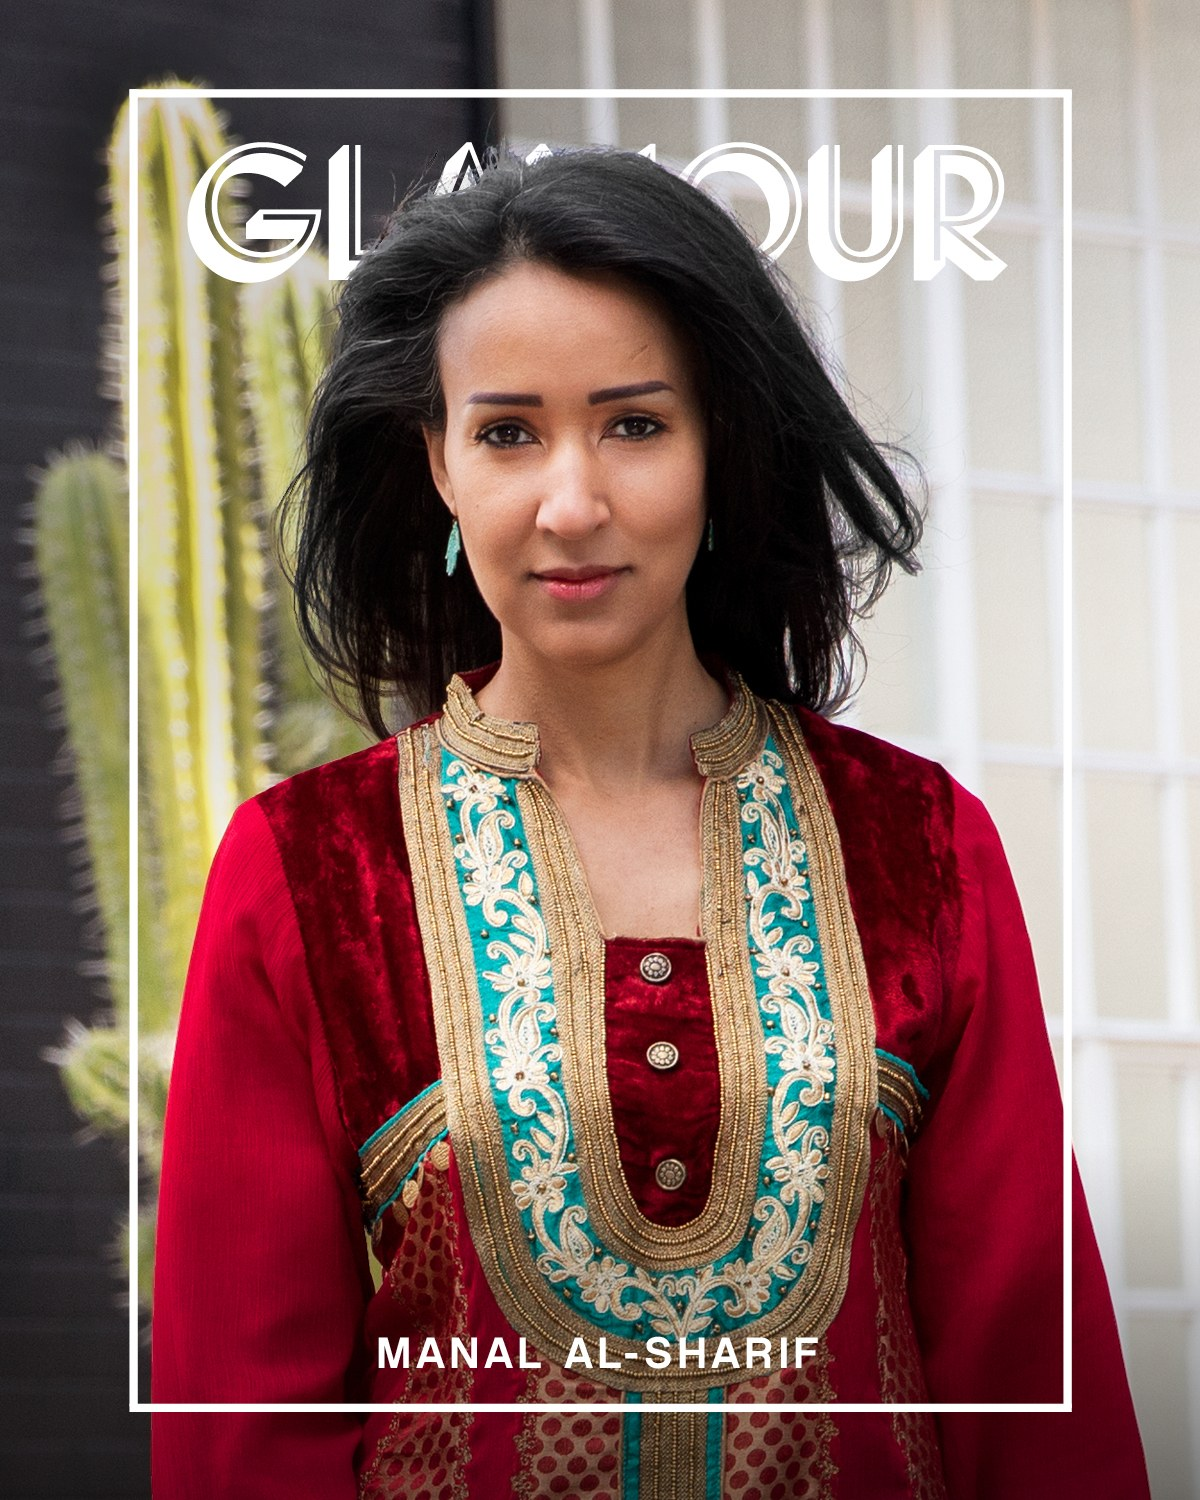 Activist Manal Al-Sharif for Glamour